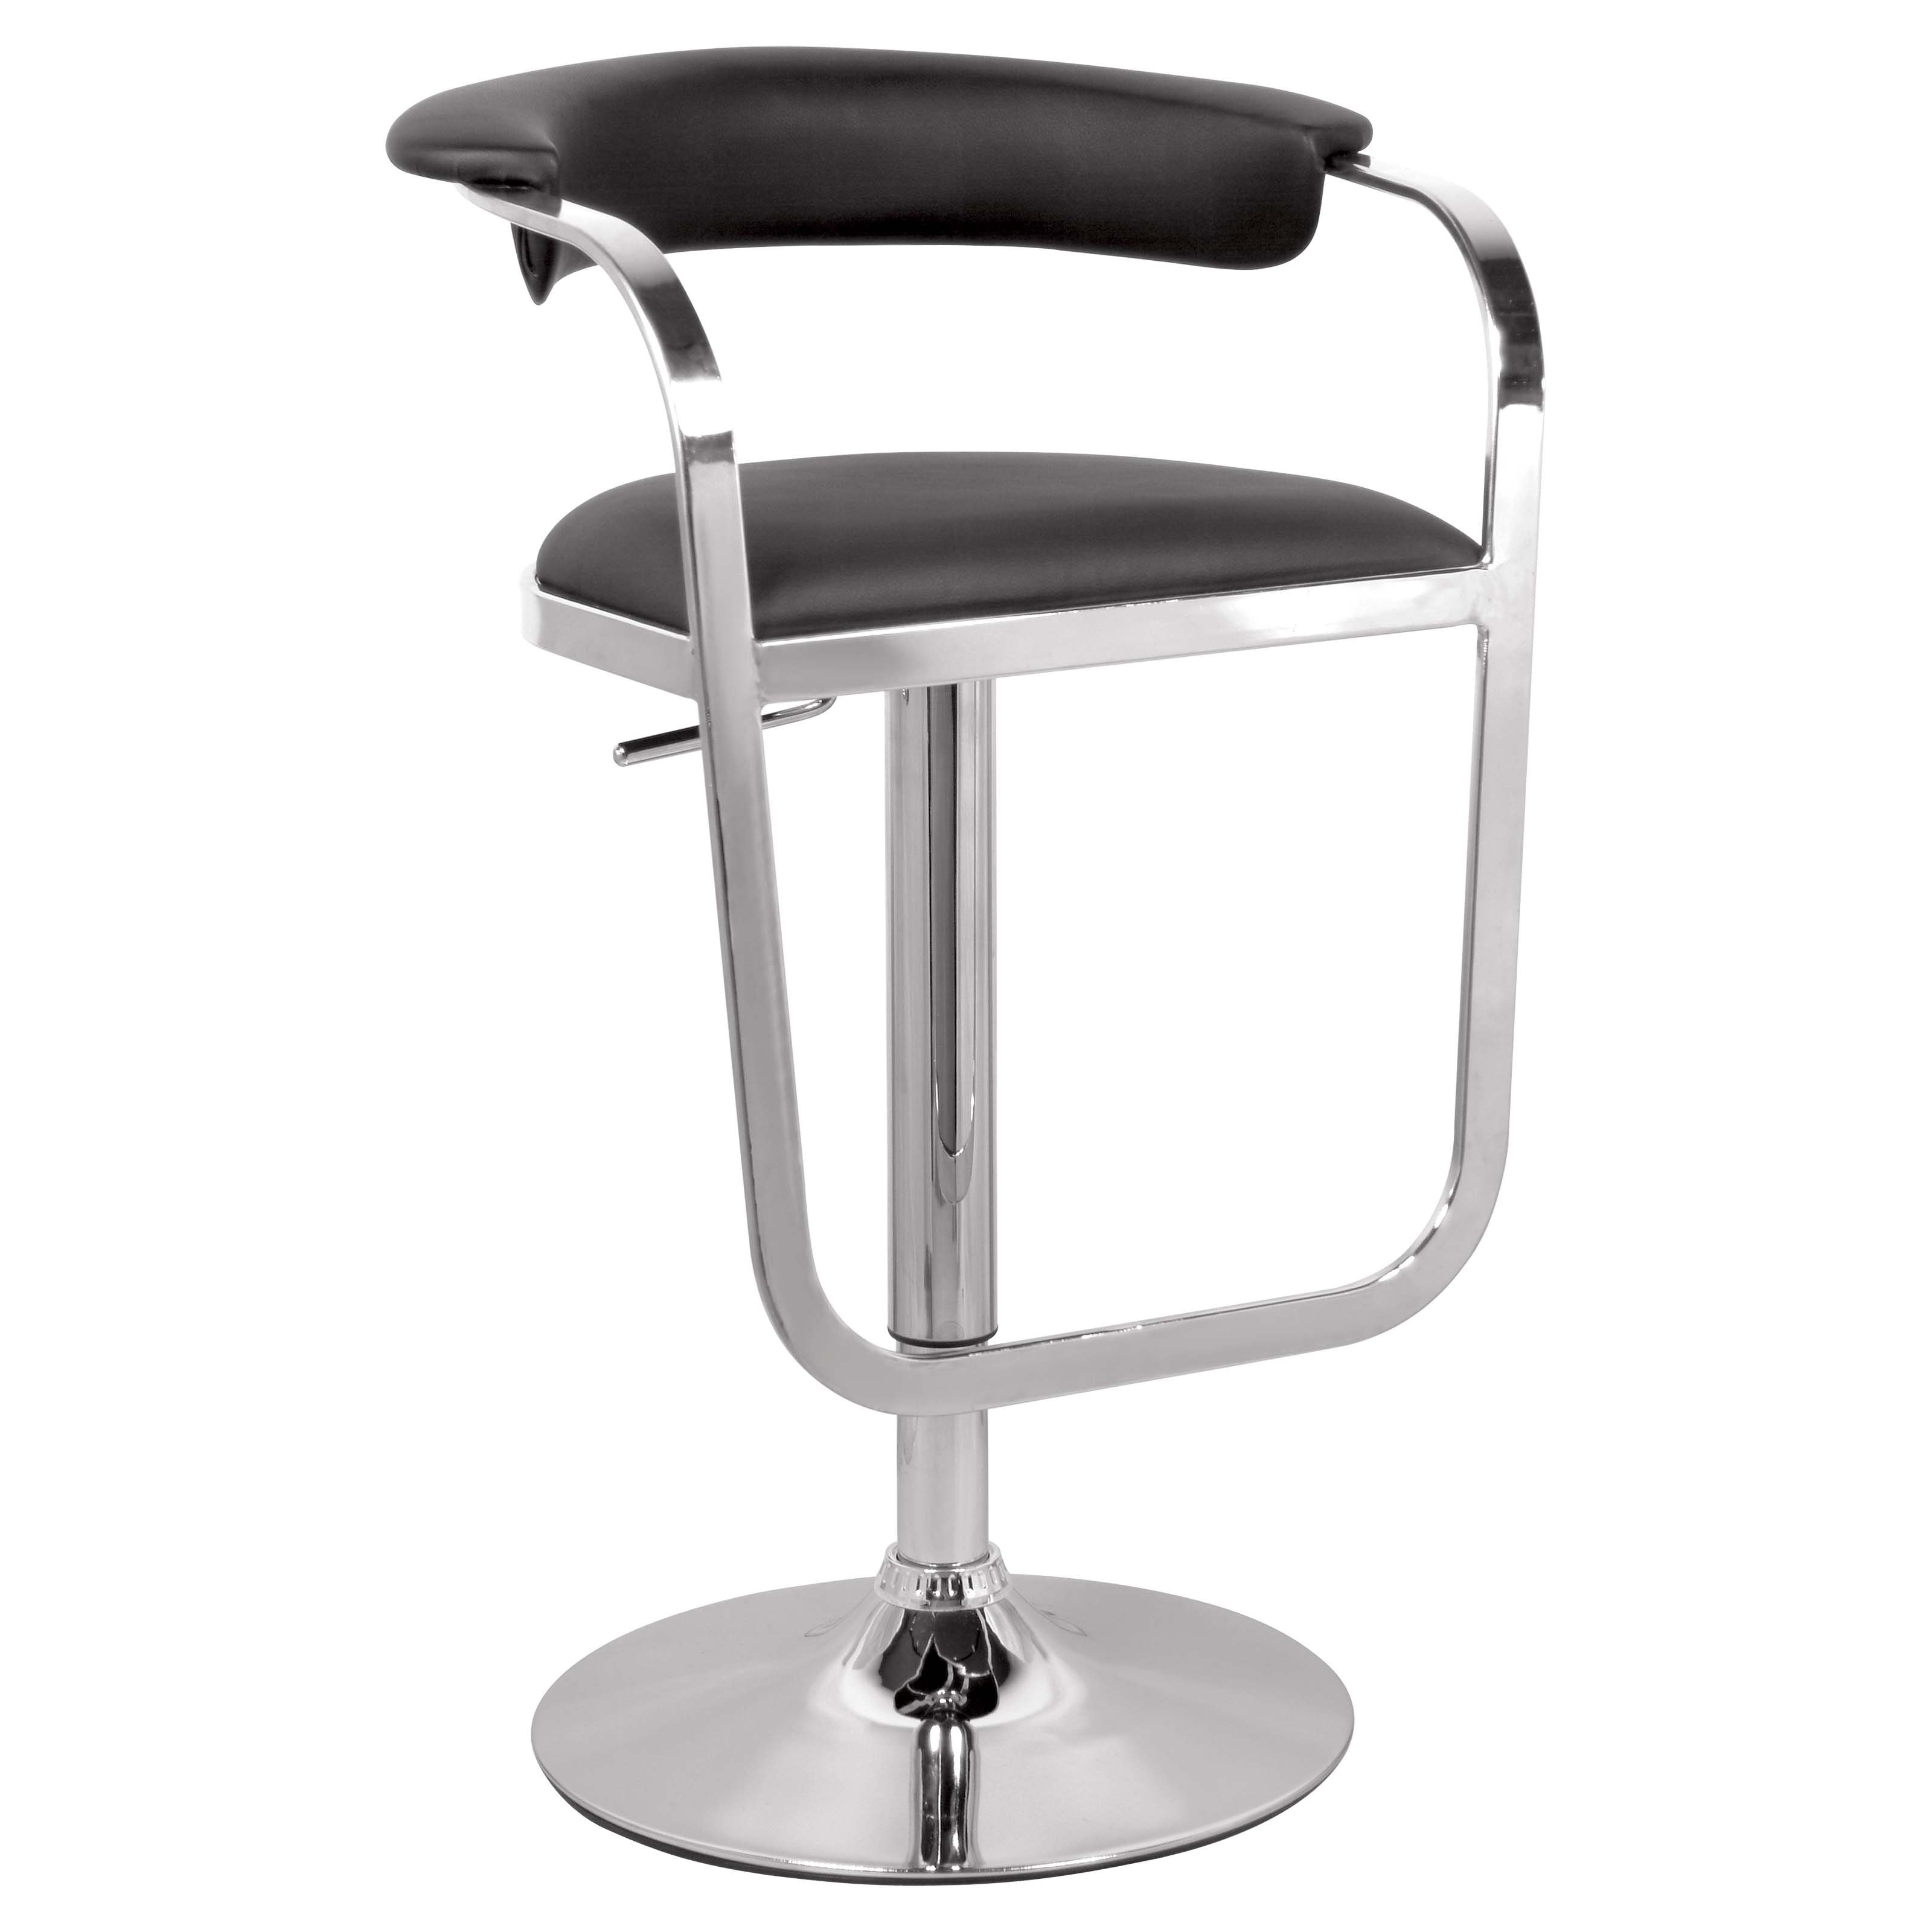 Chintaly Colby Pneumatic Gas Lift Adjustable Height Swivel Bar Stool - Black